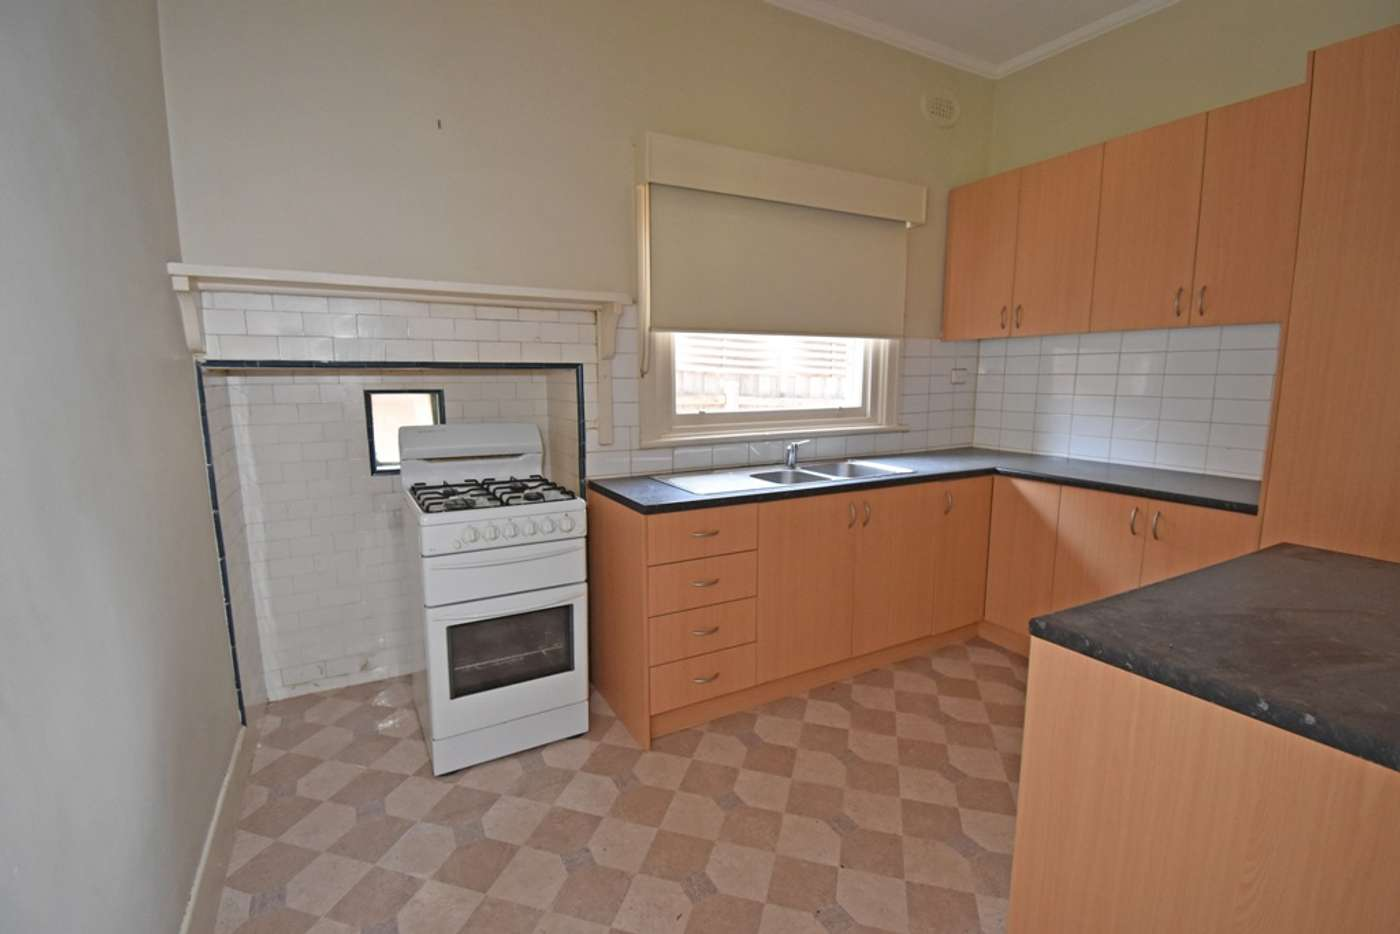 Sixth view of Homely house listing, 121 Brewer Road, Bentleigh VIC 3204